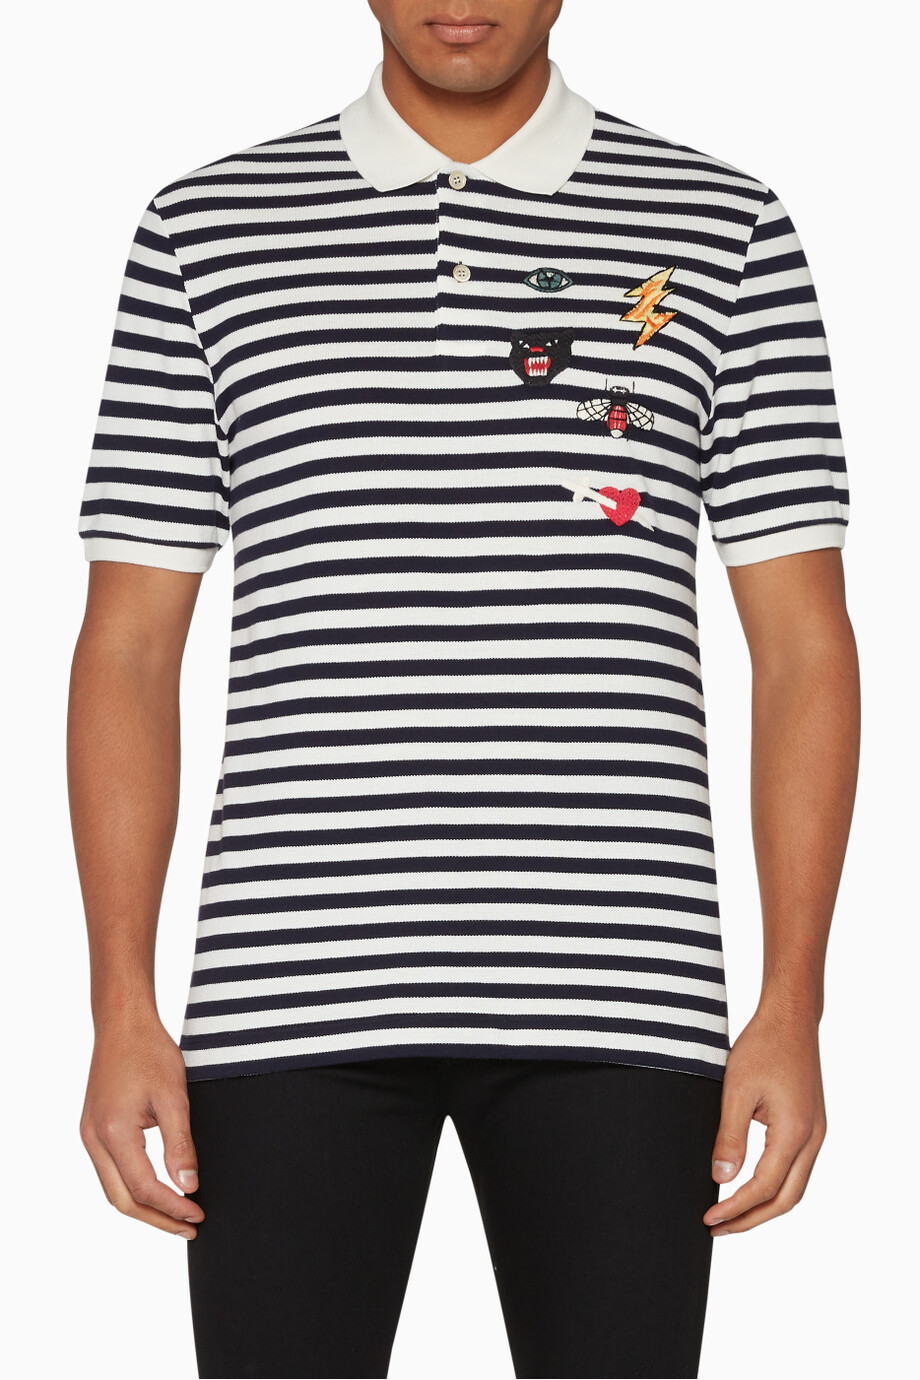 aebc4683 Shop Gucci Blue Embroidered Appliqué Badges Striped Polo Shirt for ...